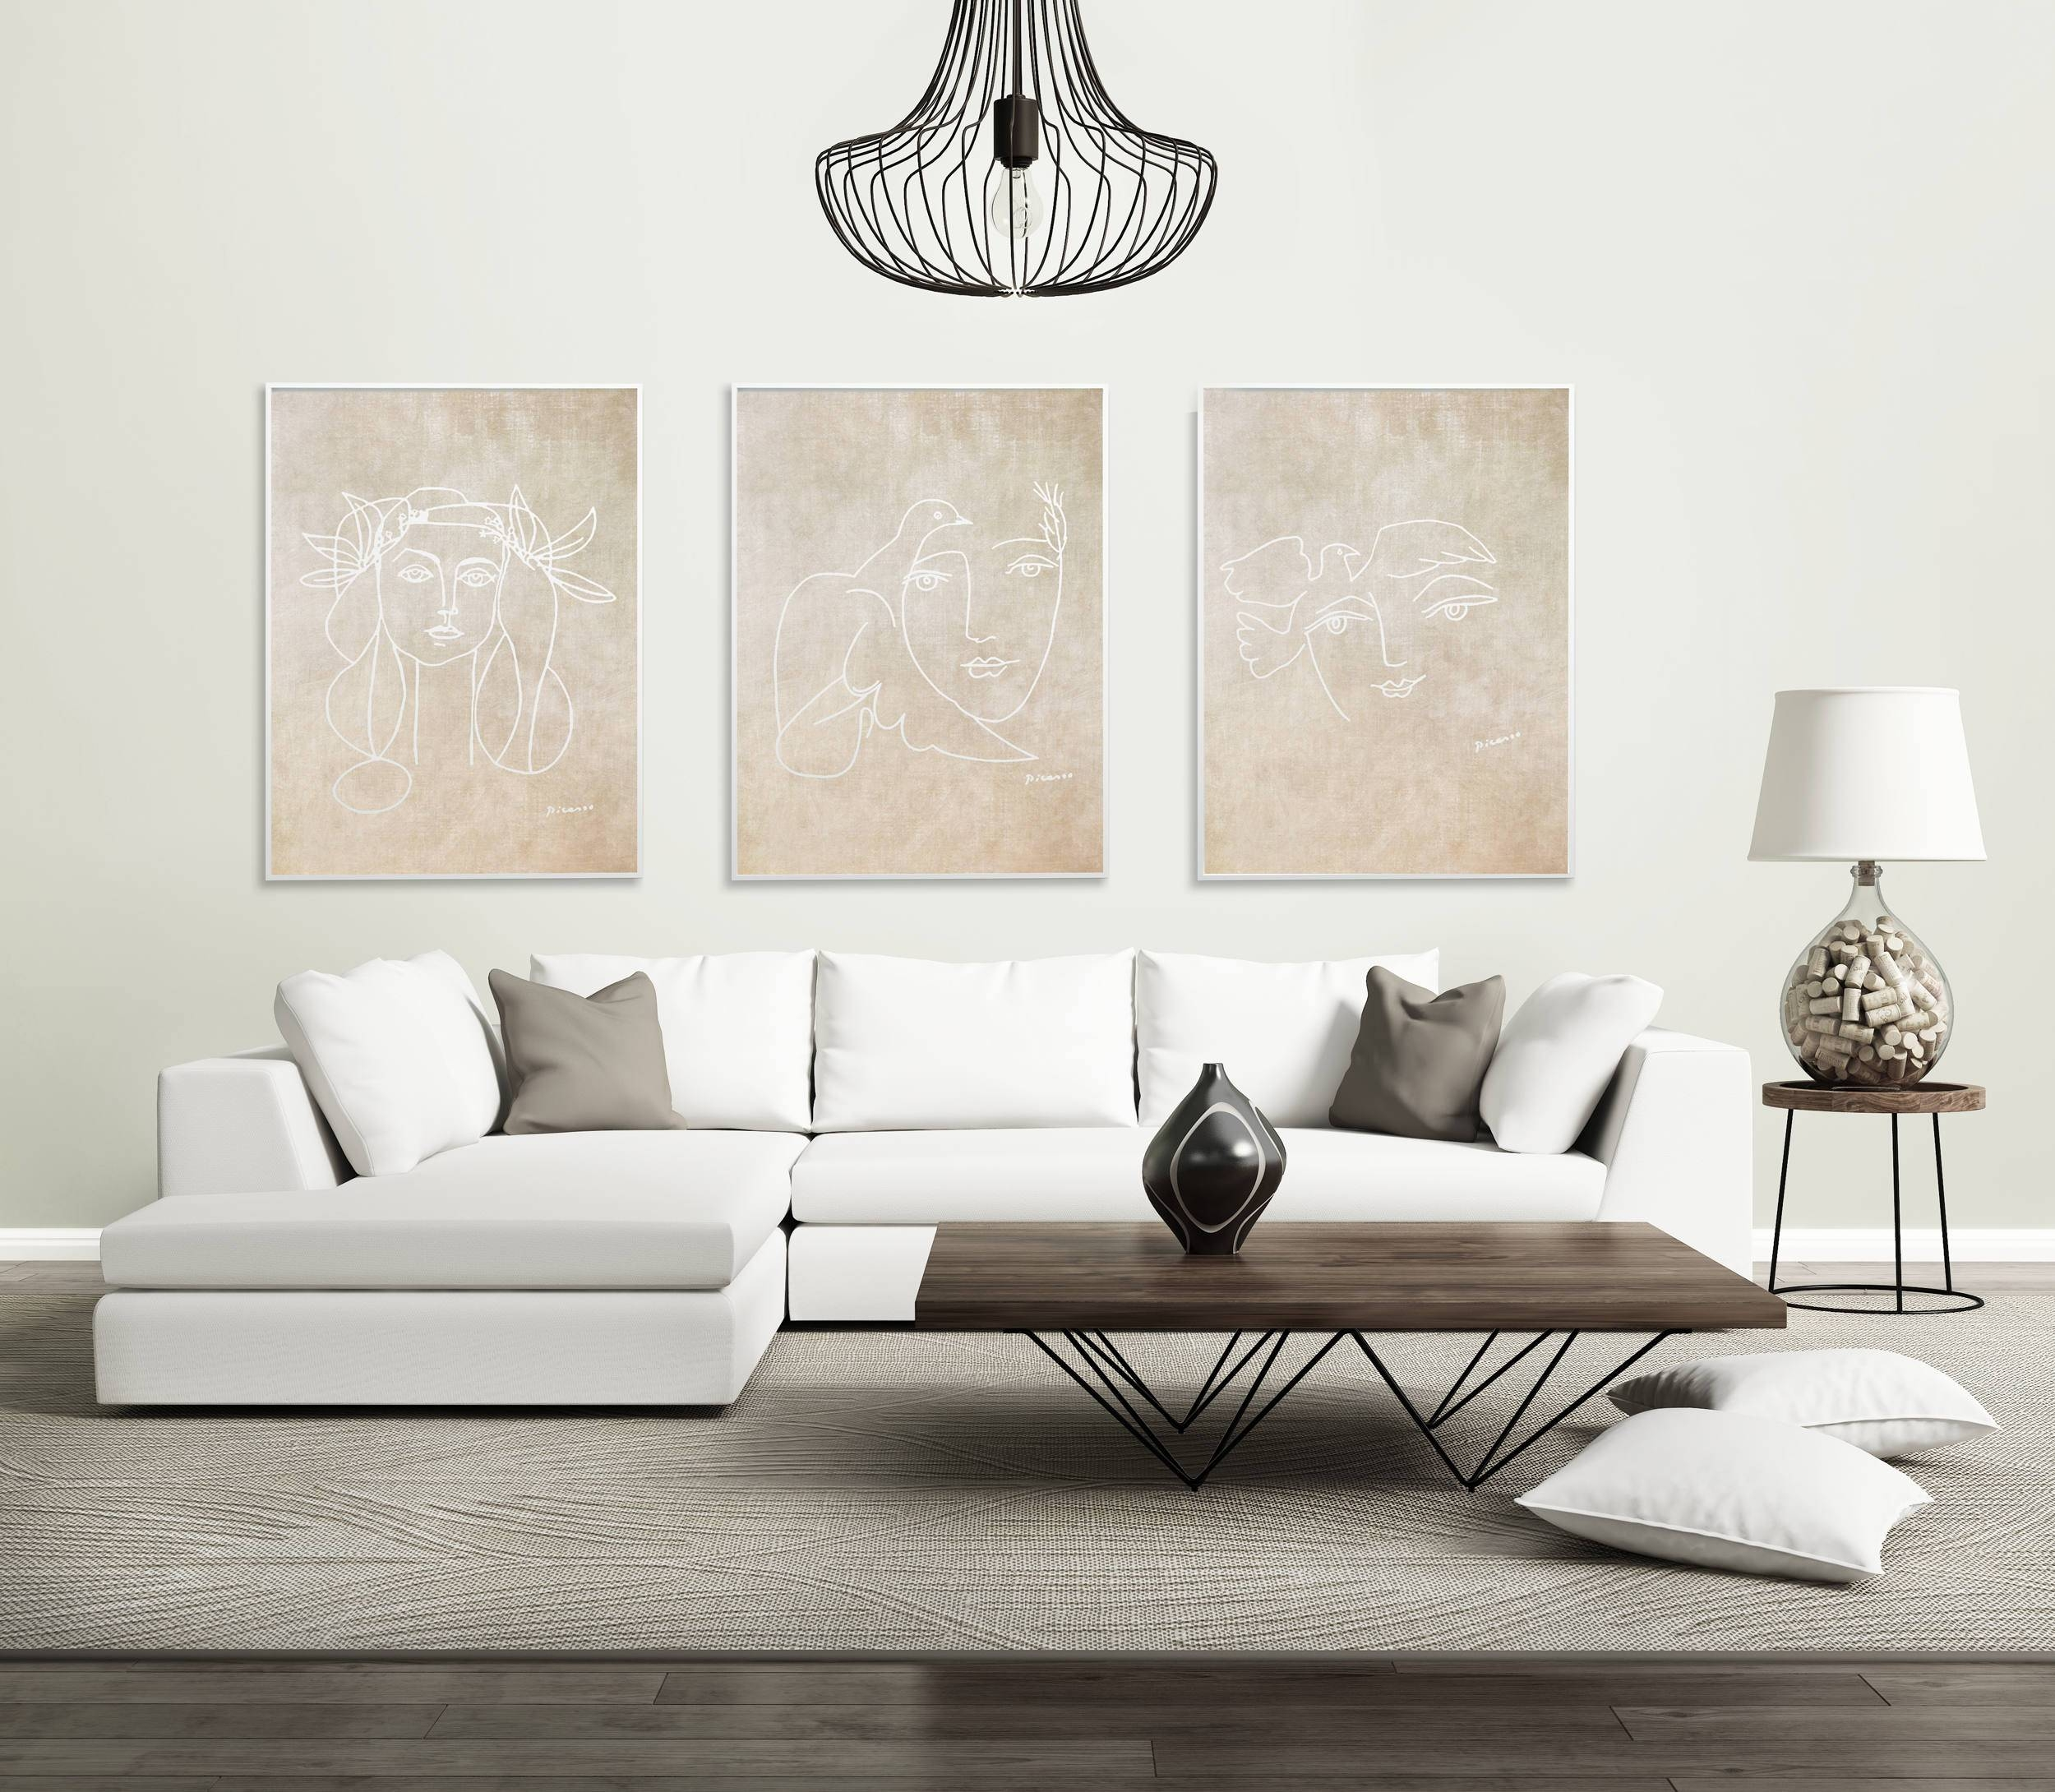 2018 Best Of Neutral Wall Art